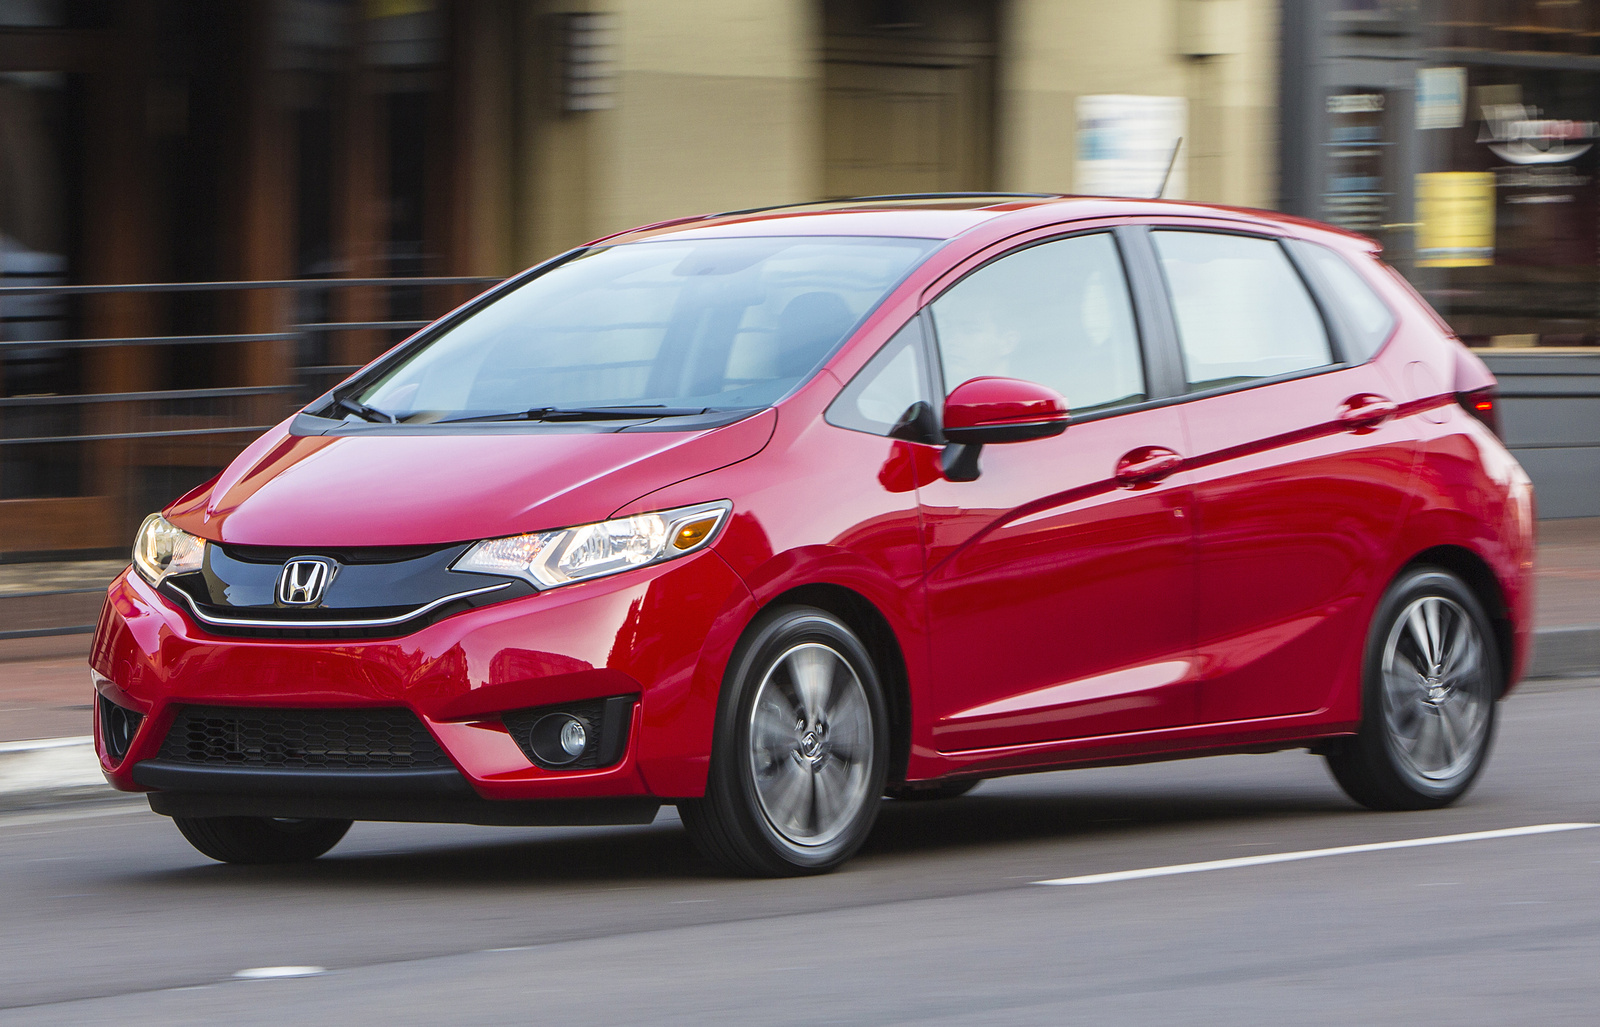 West Covina Honda 2016 2017 Honda Fit For Sale In Los Angeles Ca Cargurus